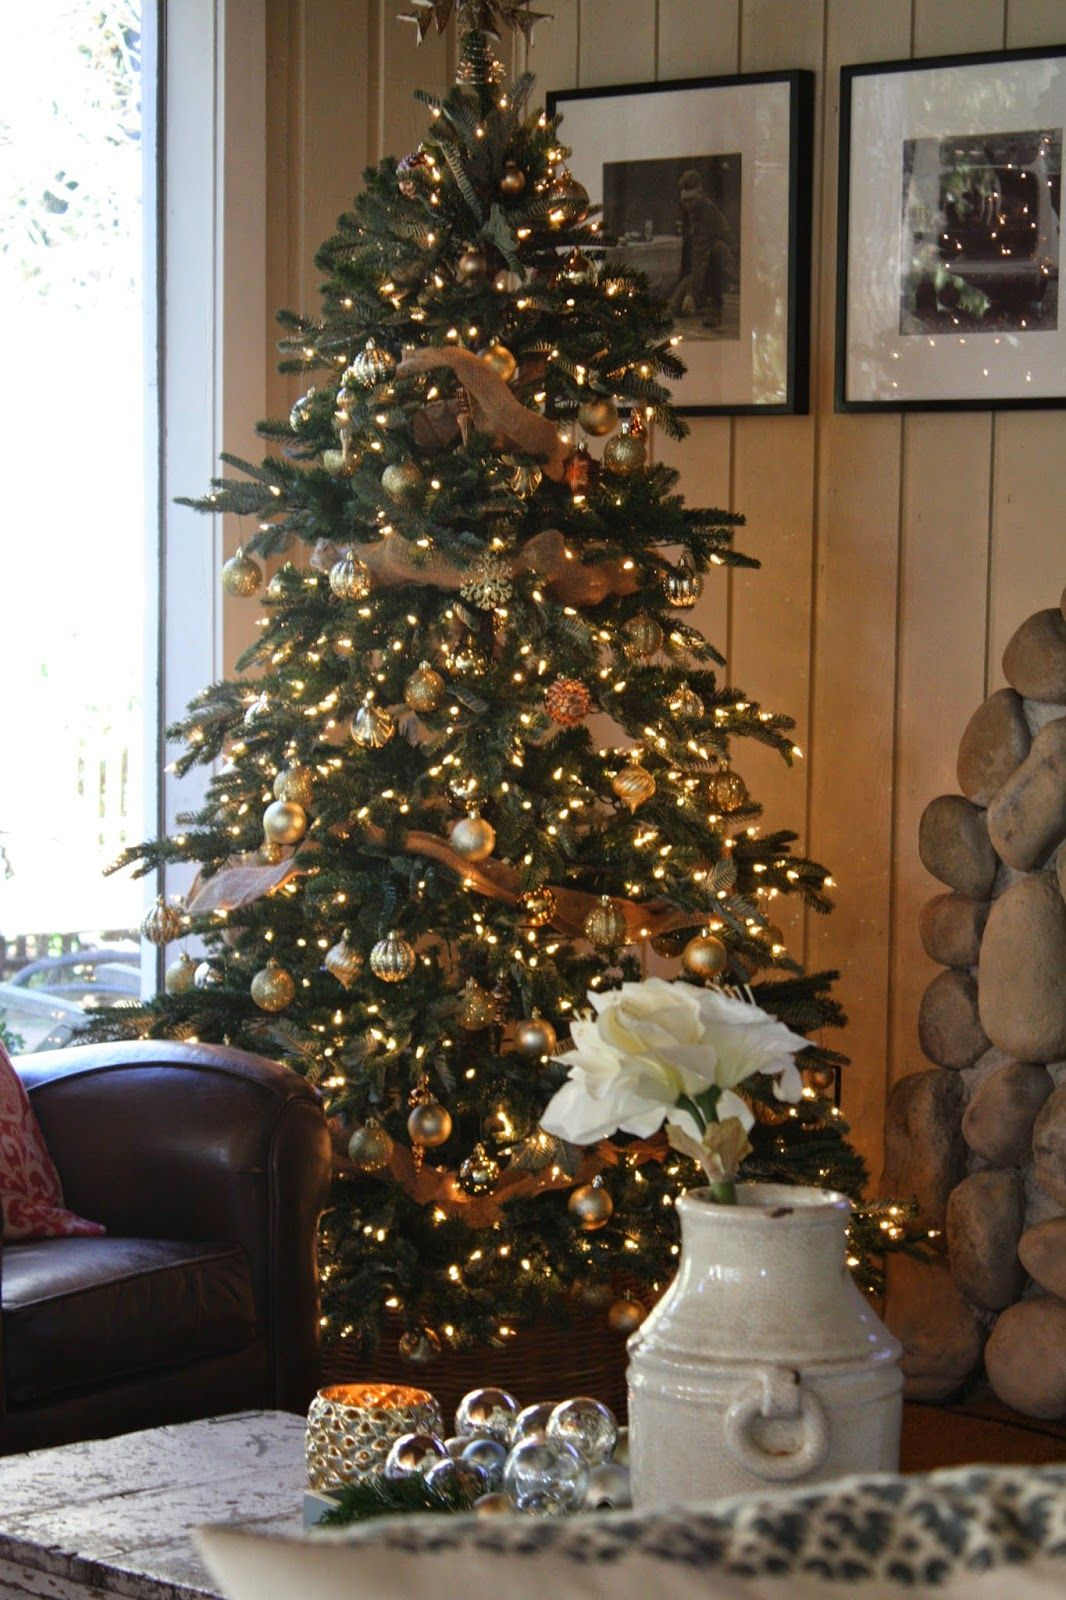 Pin by Barbara Struven on CHRISTMAS TREES | Pinterest | Firs ...